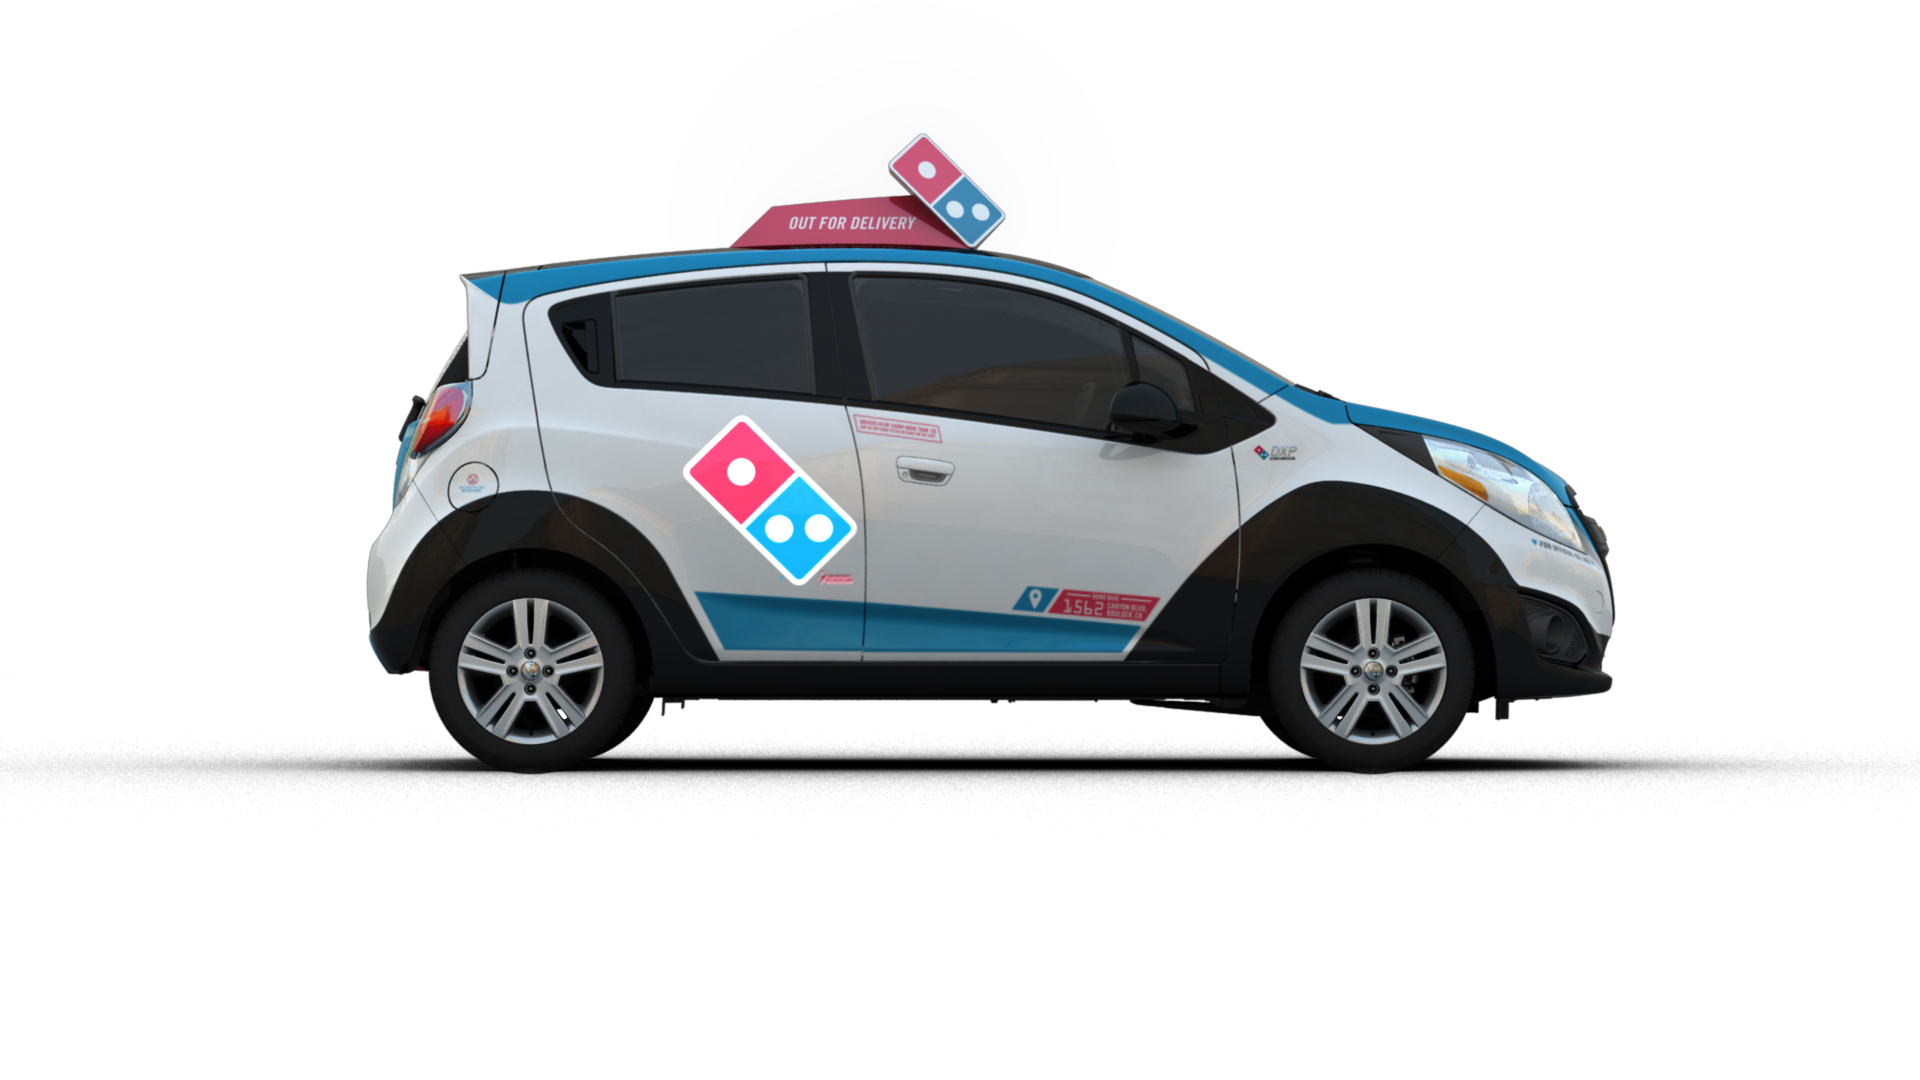 Domino's Just Unveiled a Radical Pizza Delivery Car That ...